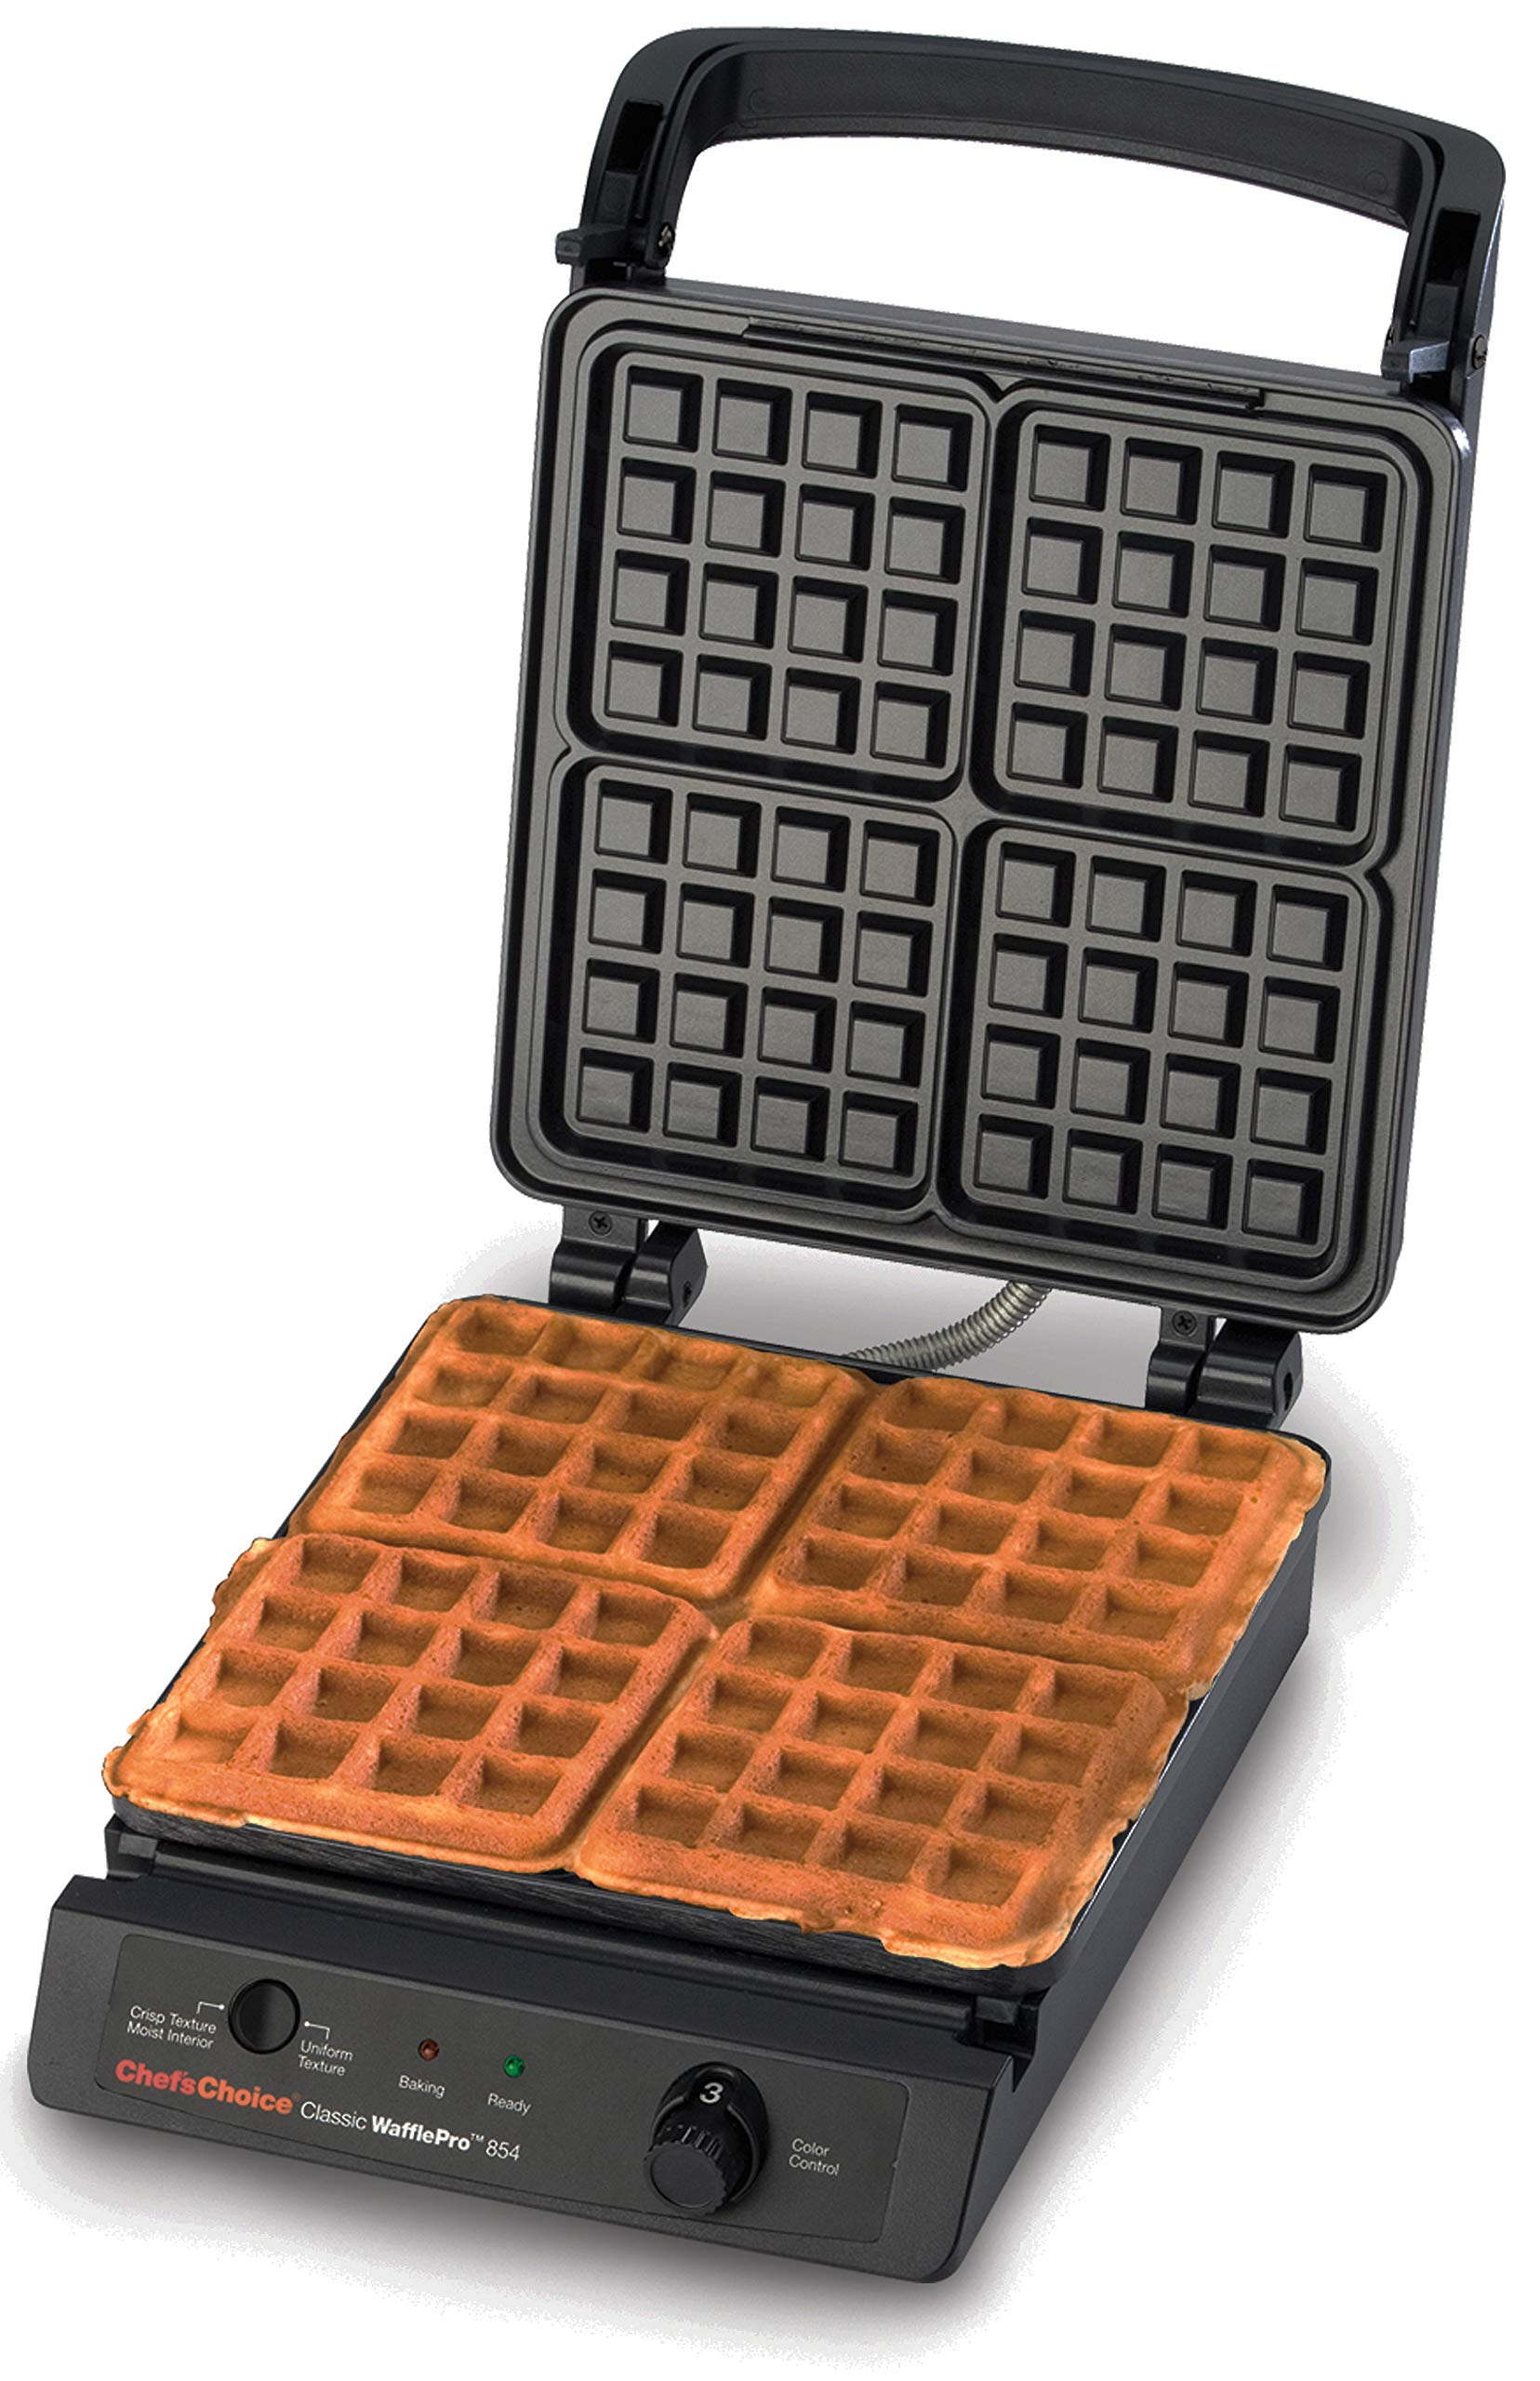 Chef'sChoice 854 Classic WafflePro Nonstick Waffle Maker Features Taste and Texture Select Option with Temperature Control Make Delicious Waffles for Breakfast Lunch or Dinner, 4-Square, Black by Chef'sChoice